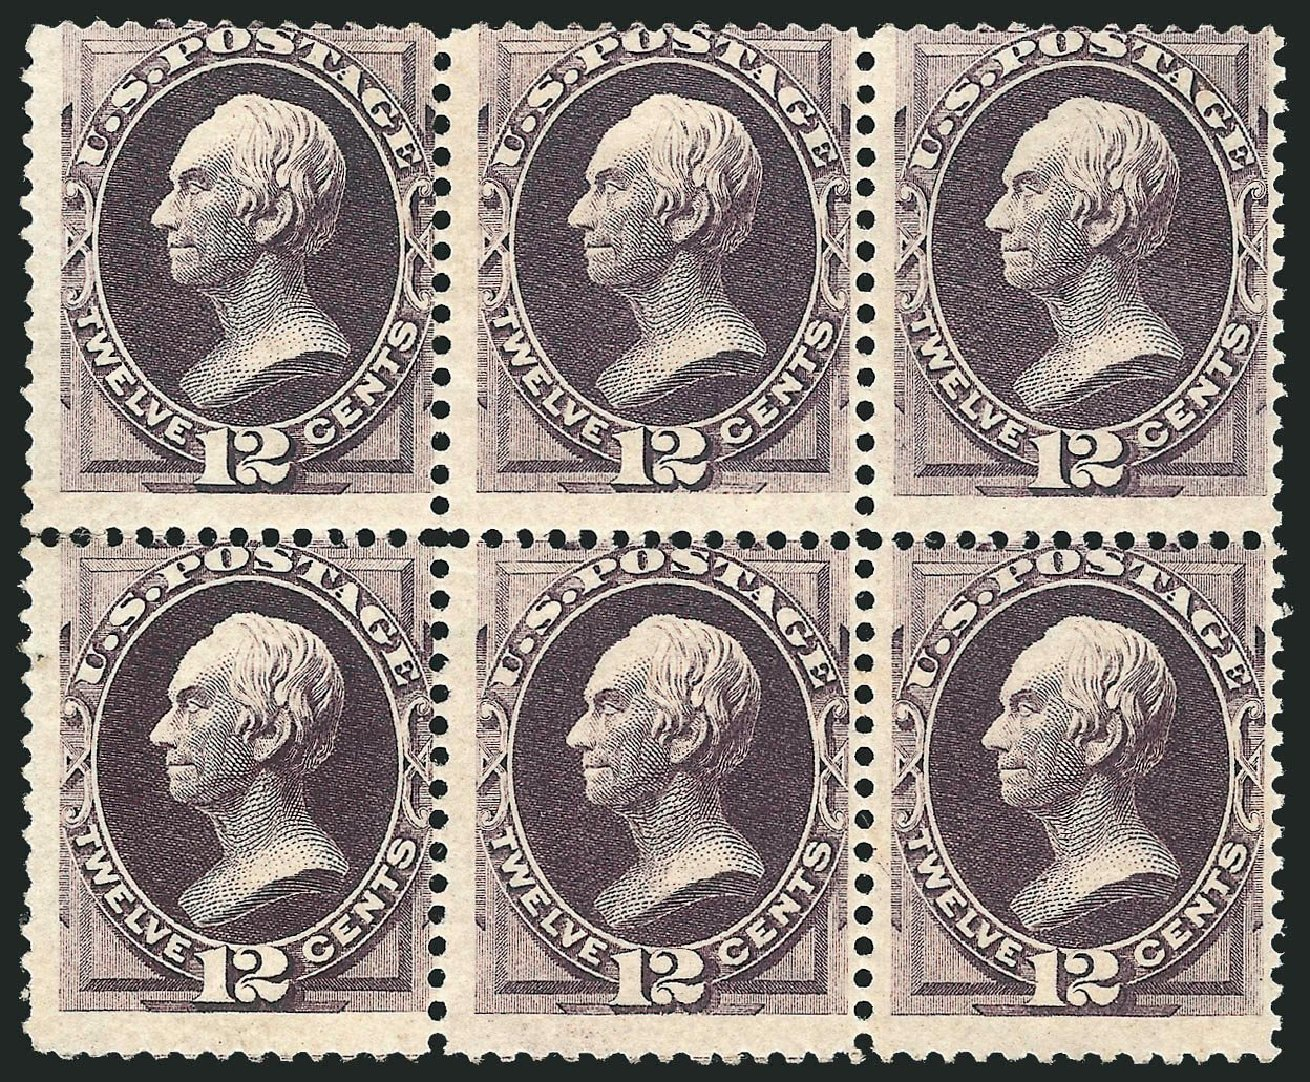 US Stamp Price Scott Cat. # 151 - 1870 12c Clay Without Grill. Robert Siegel Auction Galleries, Nov 2014, Sale 1084, Lot 3399